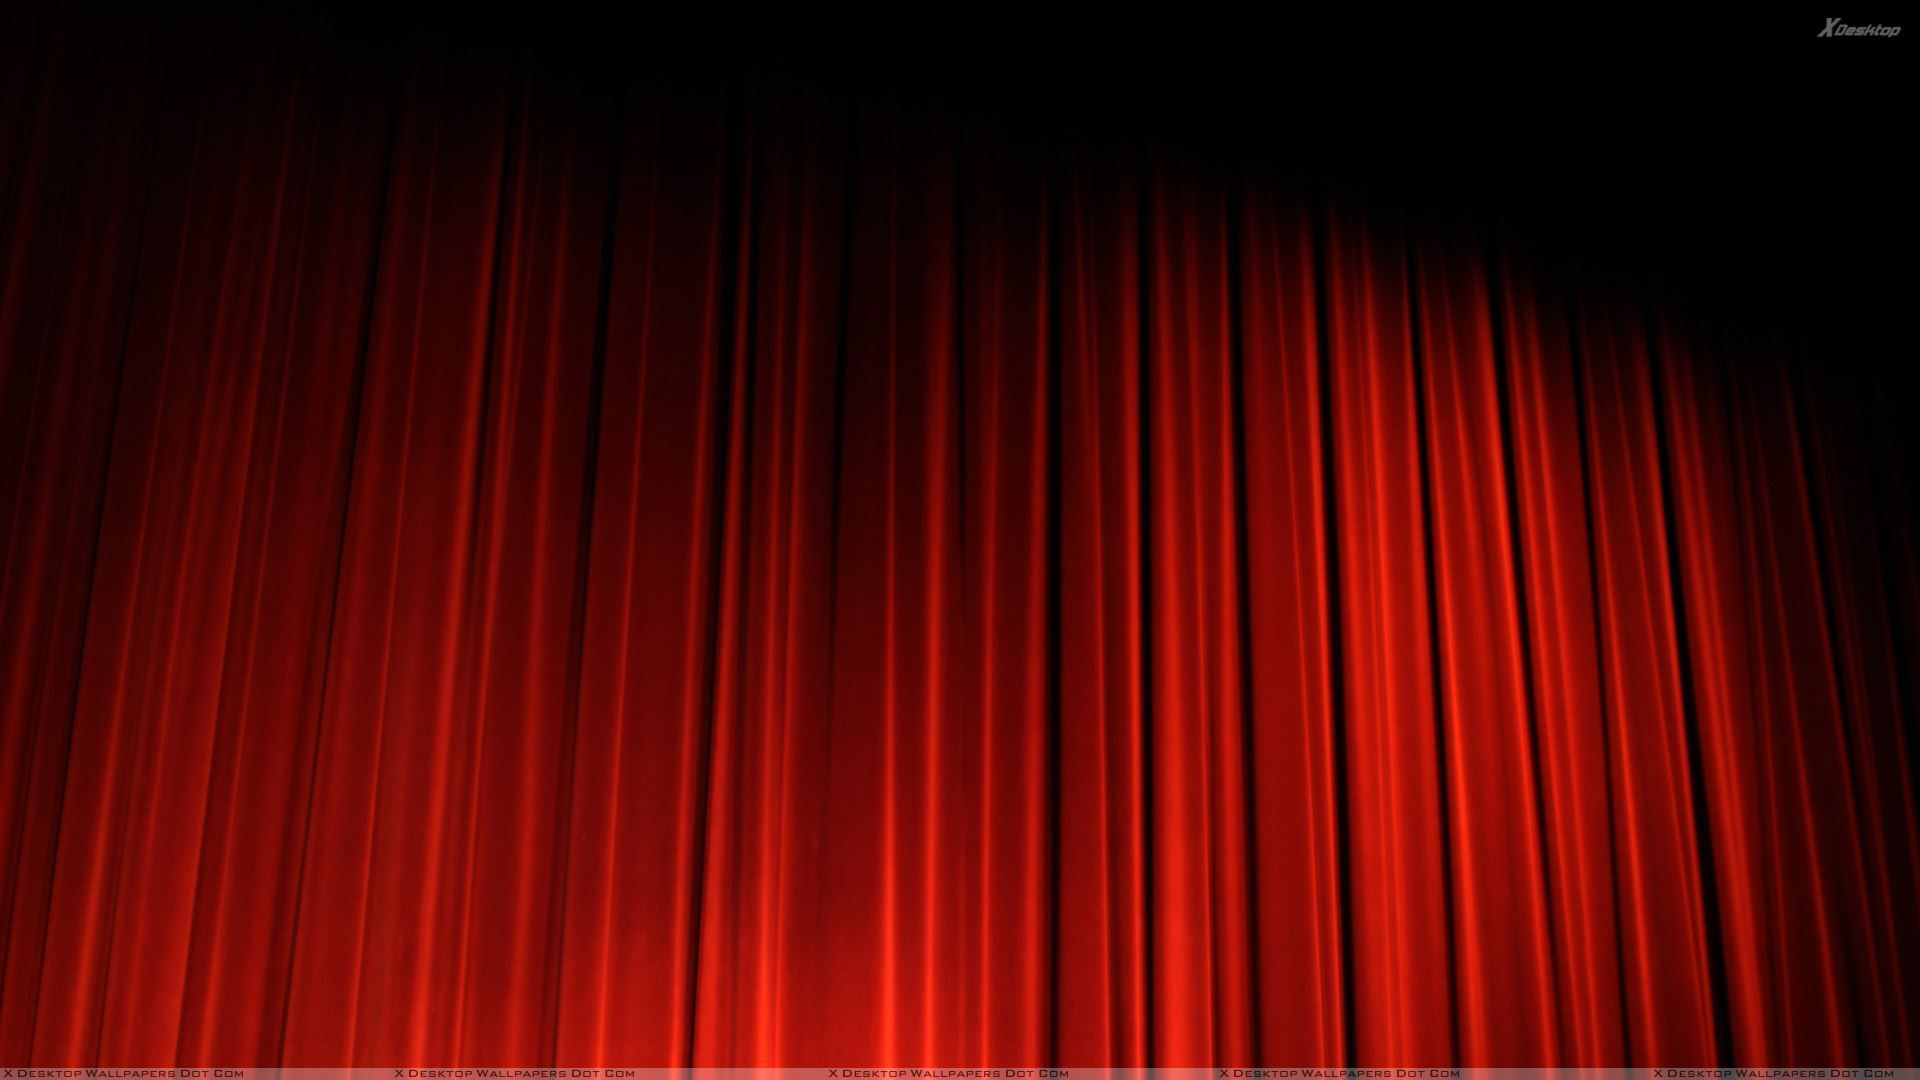 Red Curtain In Cinema Red Curtains Curtains How To Make Curtains